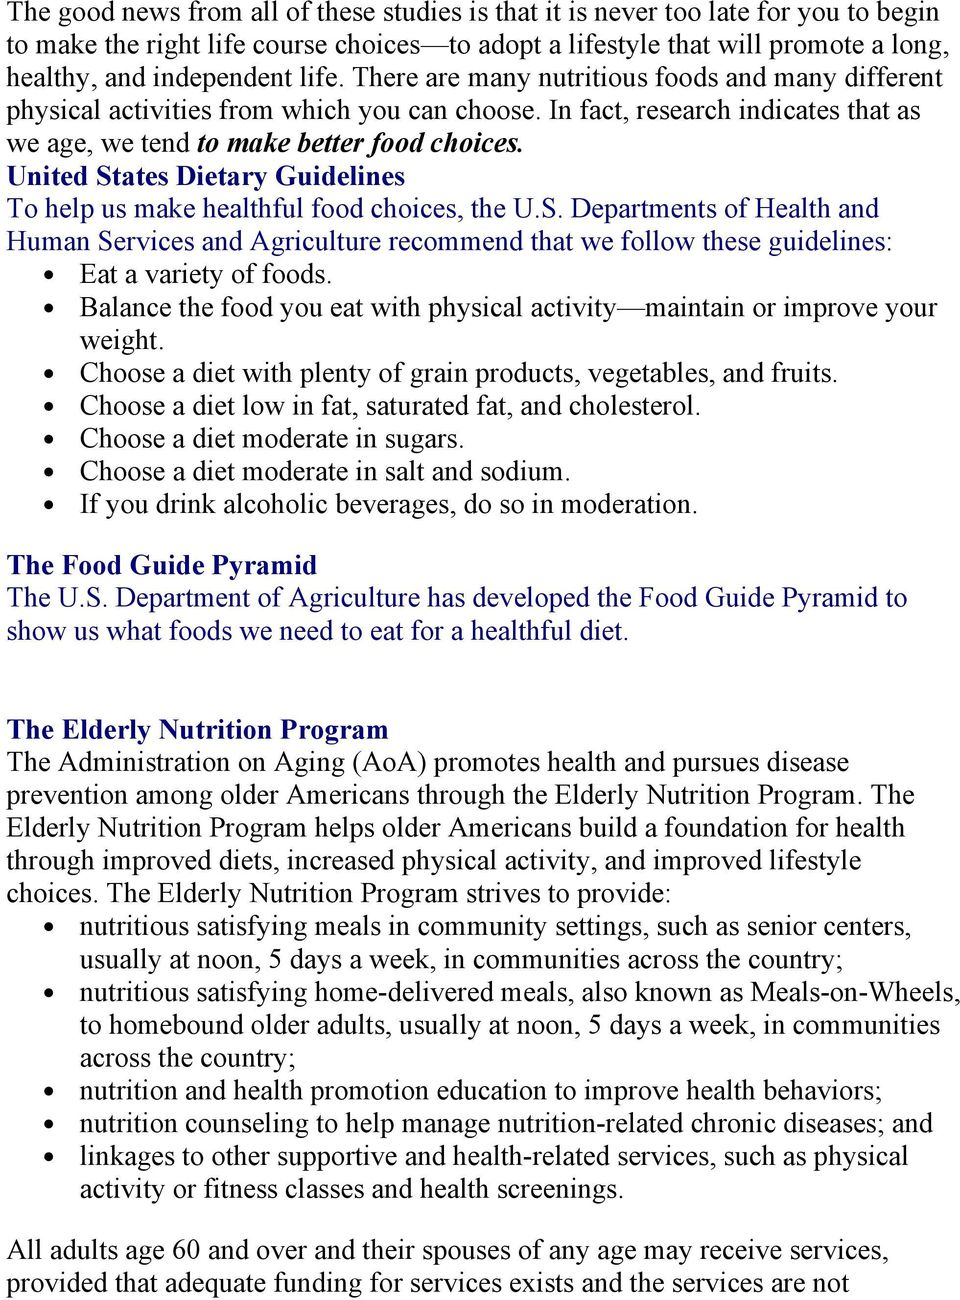 United States Dietary Guidelines To help us make healthful food choices, the U.S. Departments of Health and Human Services and Agriculture recommend that we follow these guidelines: Eat a variety of foods.